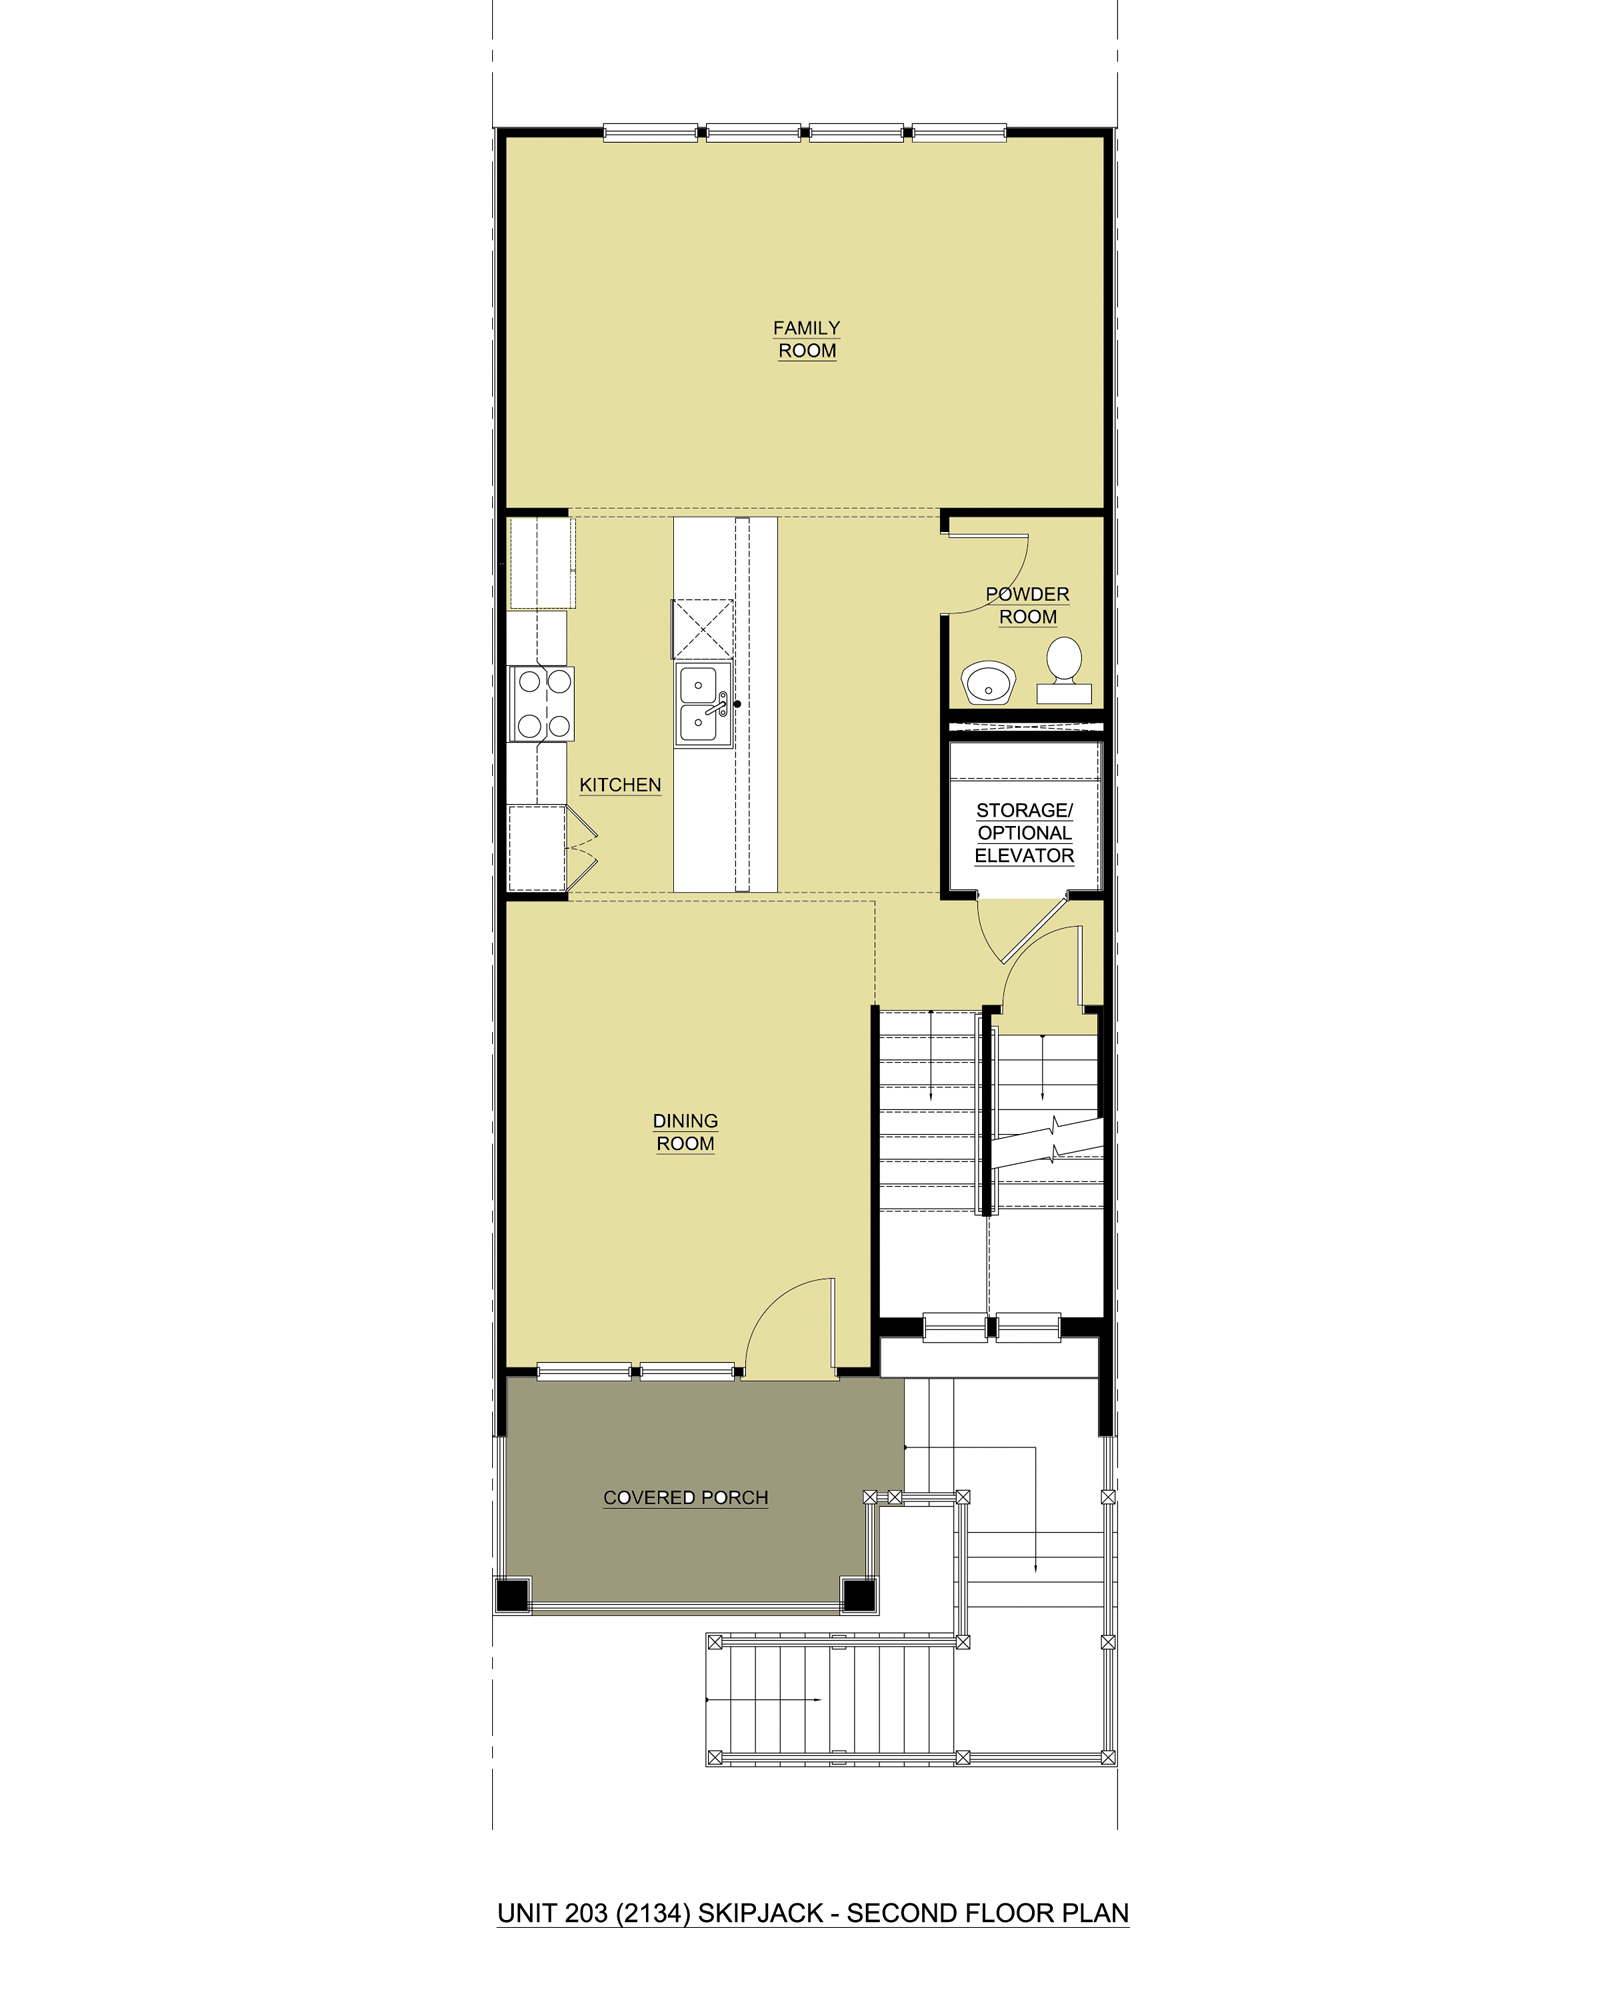 Skipjack w/ Loft,  - Second Floor